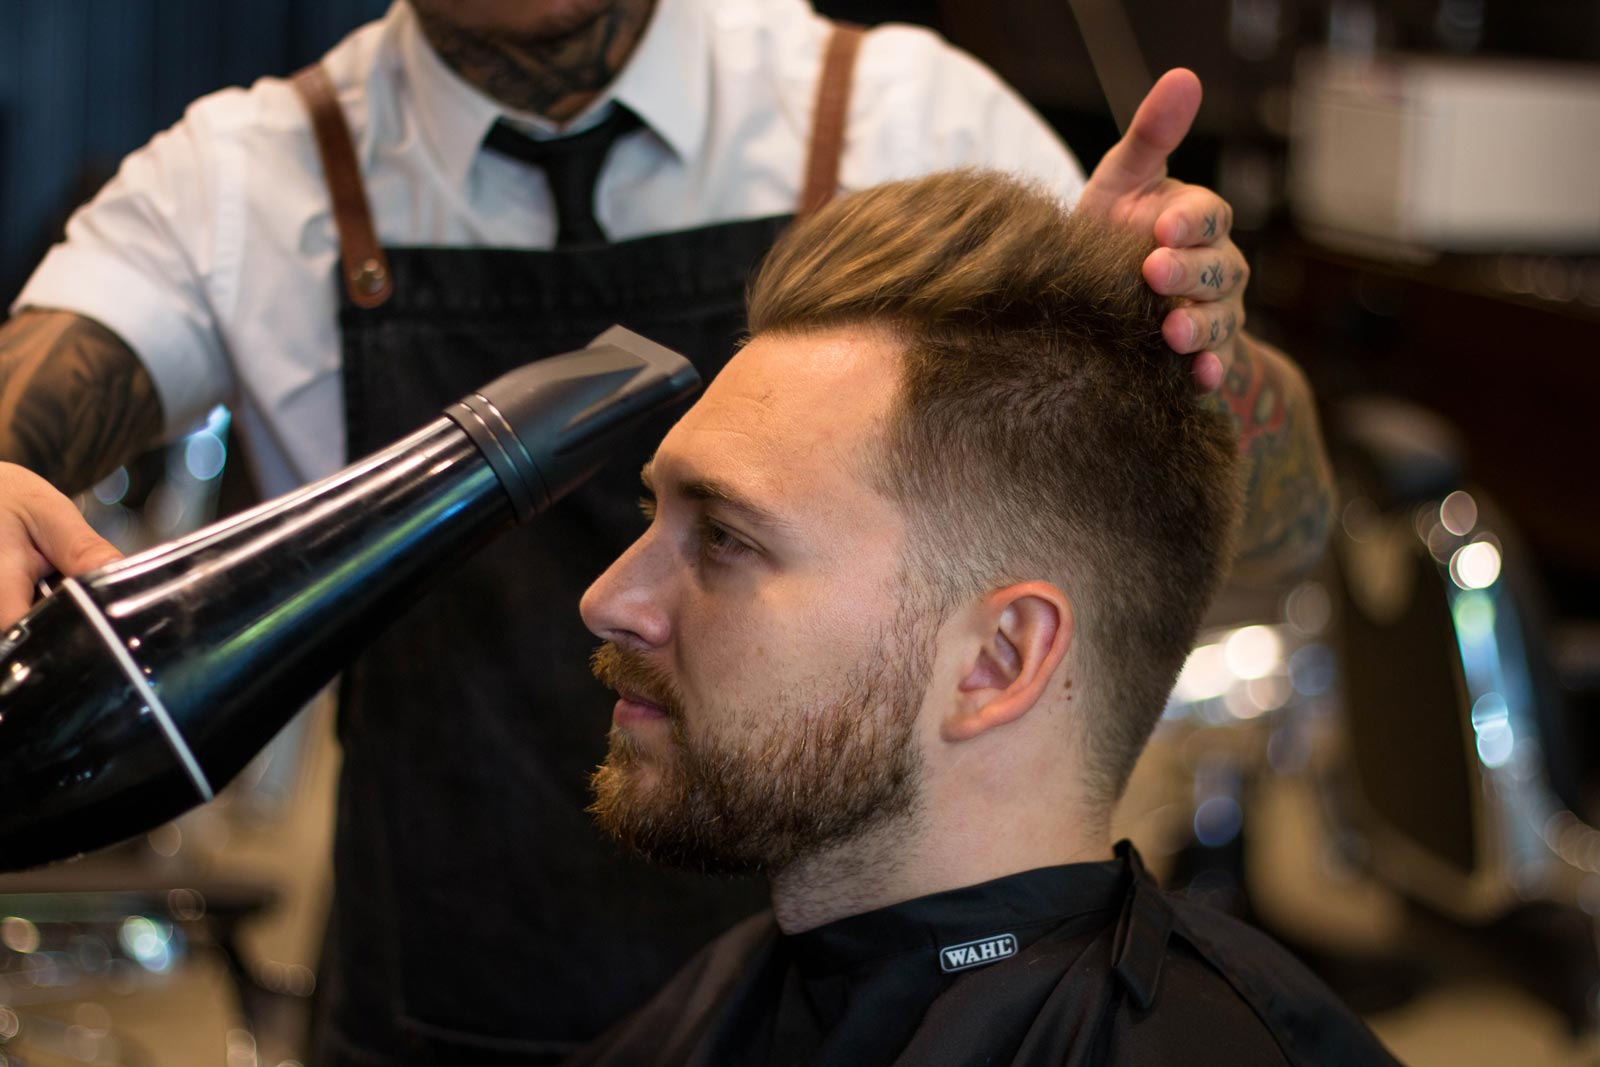 Boutique Barber - Mister Chop Shop| Surry Hills